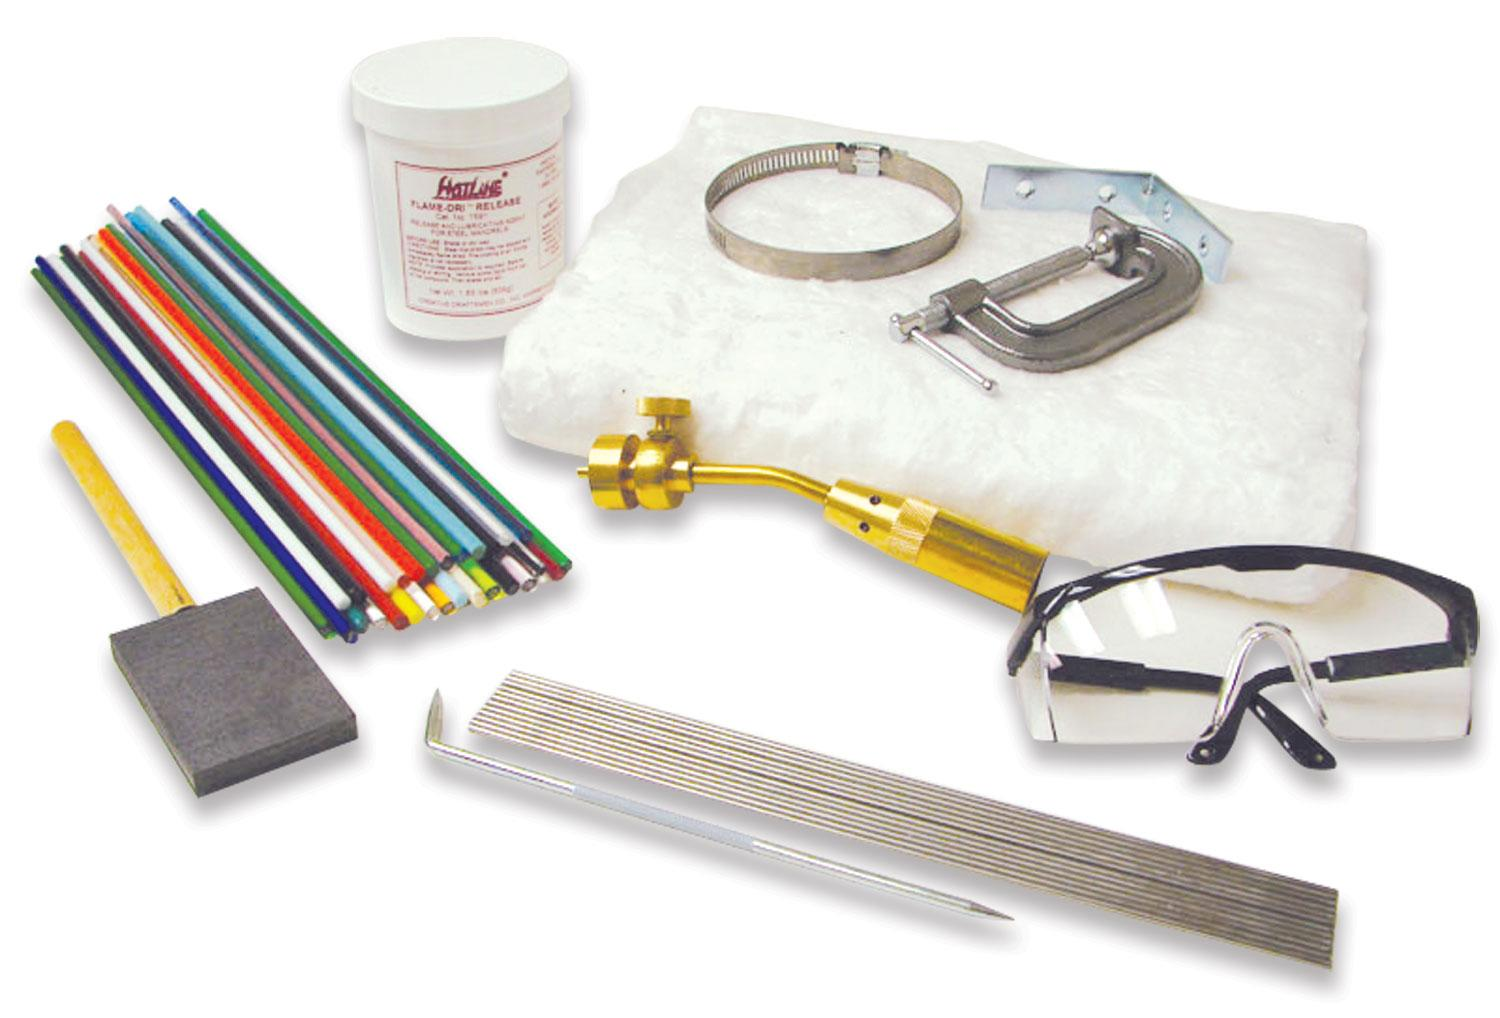 Hot Head Bead Making Kit